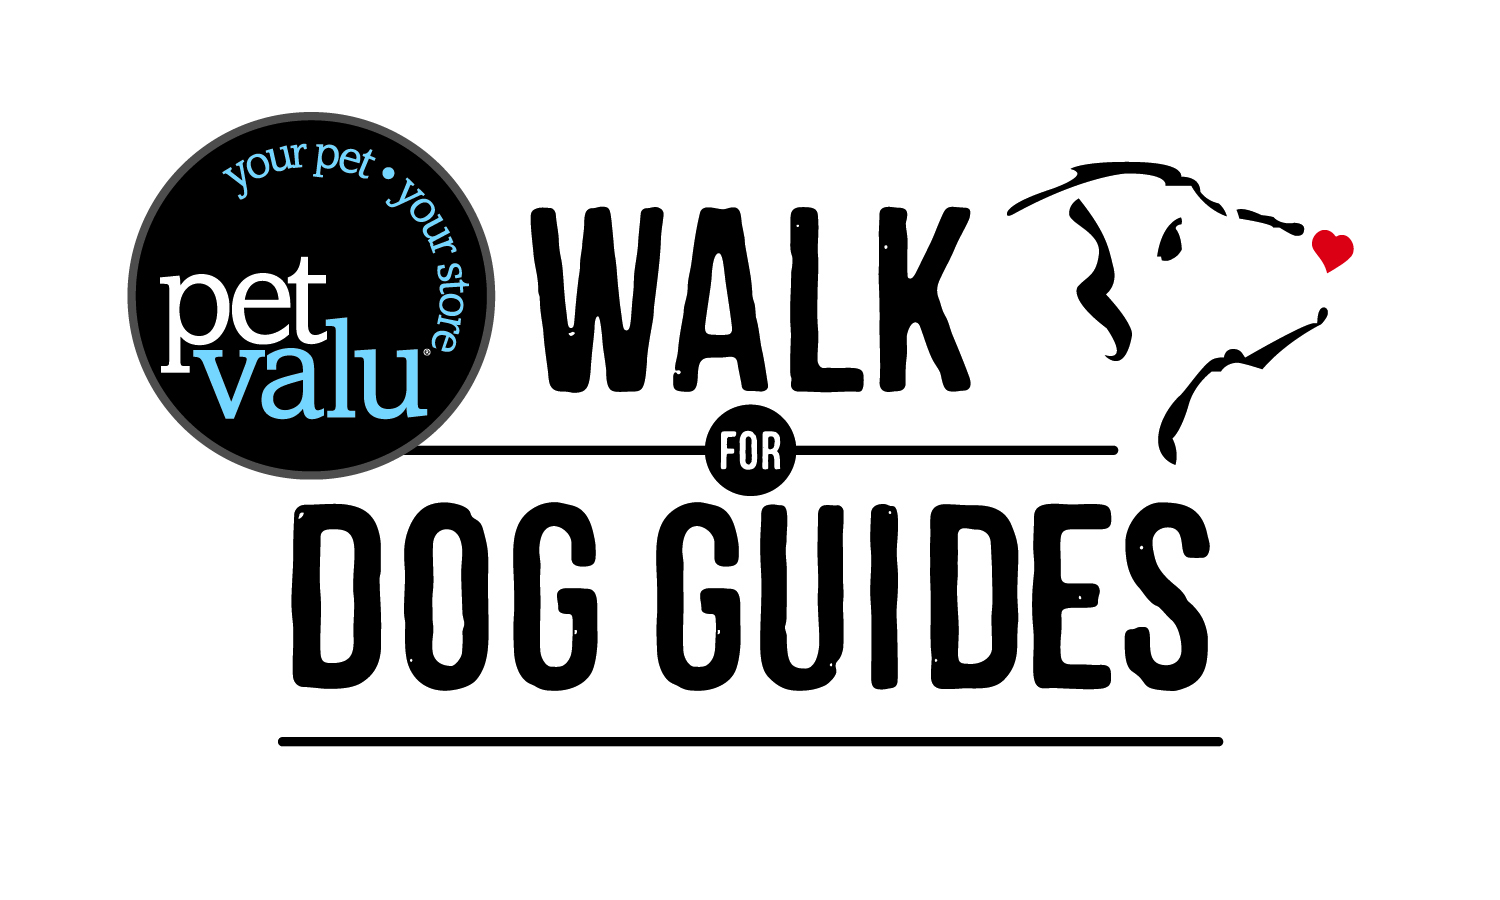 https://d3n8a8pro7vhmx.cloudfront.net/easternshorecooperataor/pages/4405/meta_images/original/Pet_Valu_Walk_for_Dog_Guides_Logo.jpg?1557861489